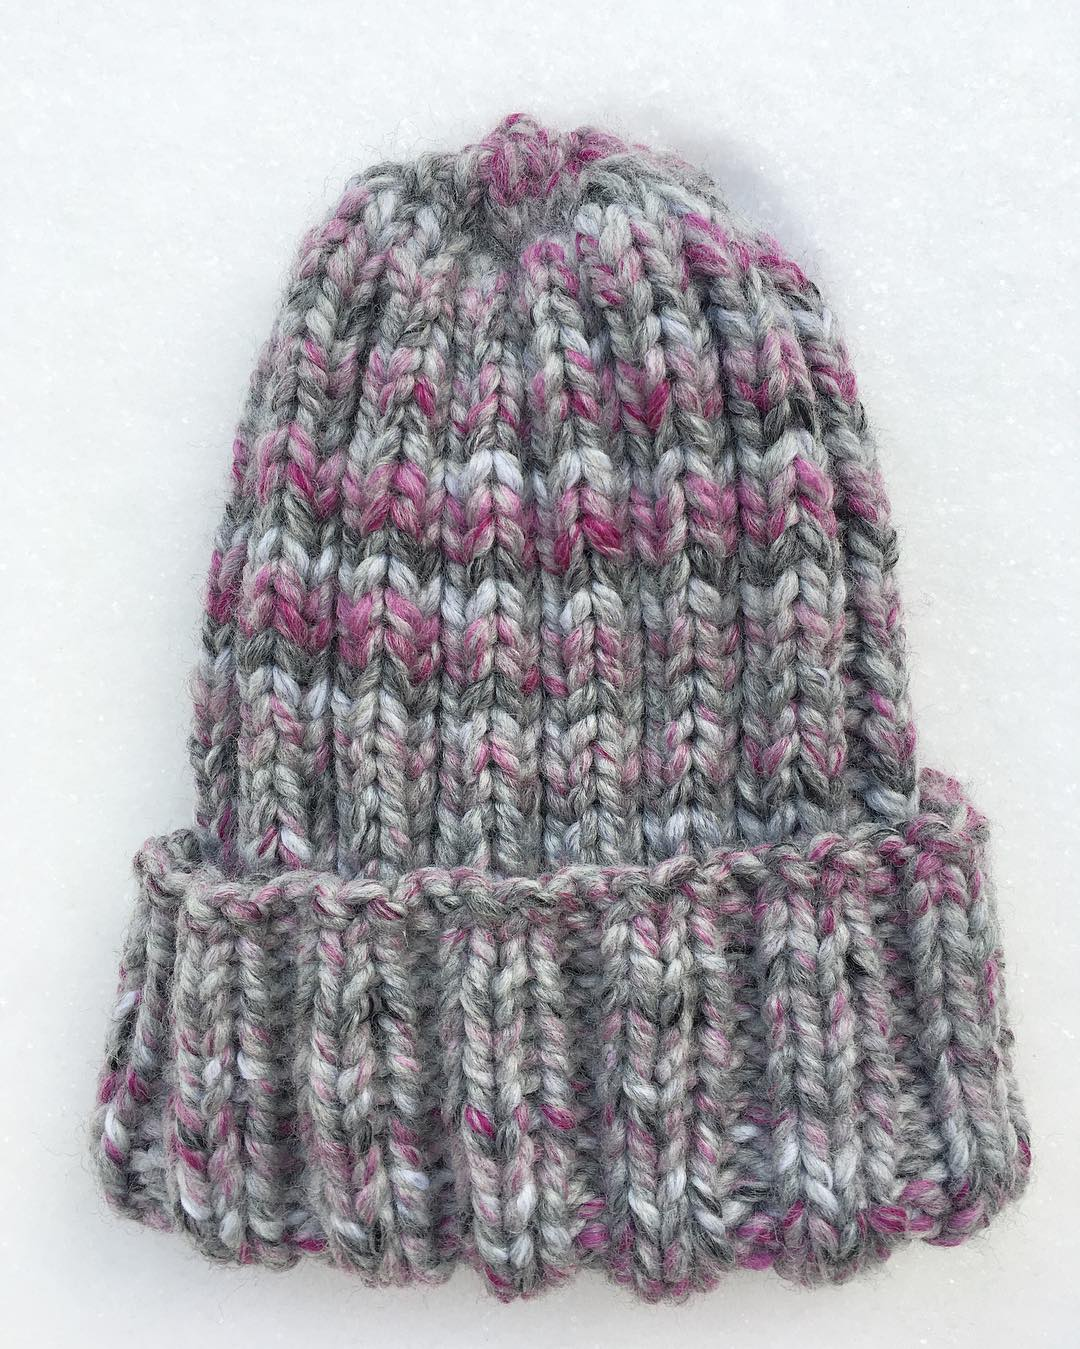 9c413f0eb 65 Only the Best Knit Hat Patterns Images for 2019 - Page 14 of 54 ...